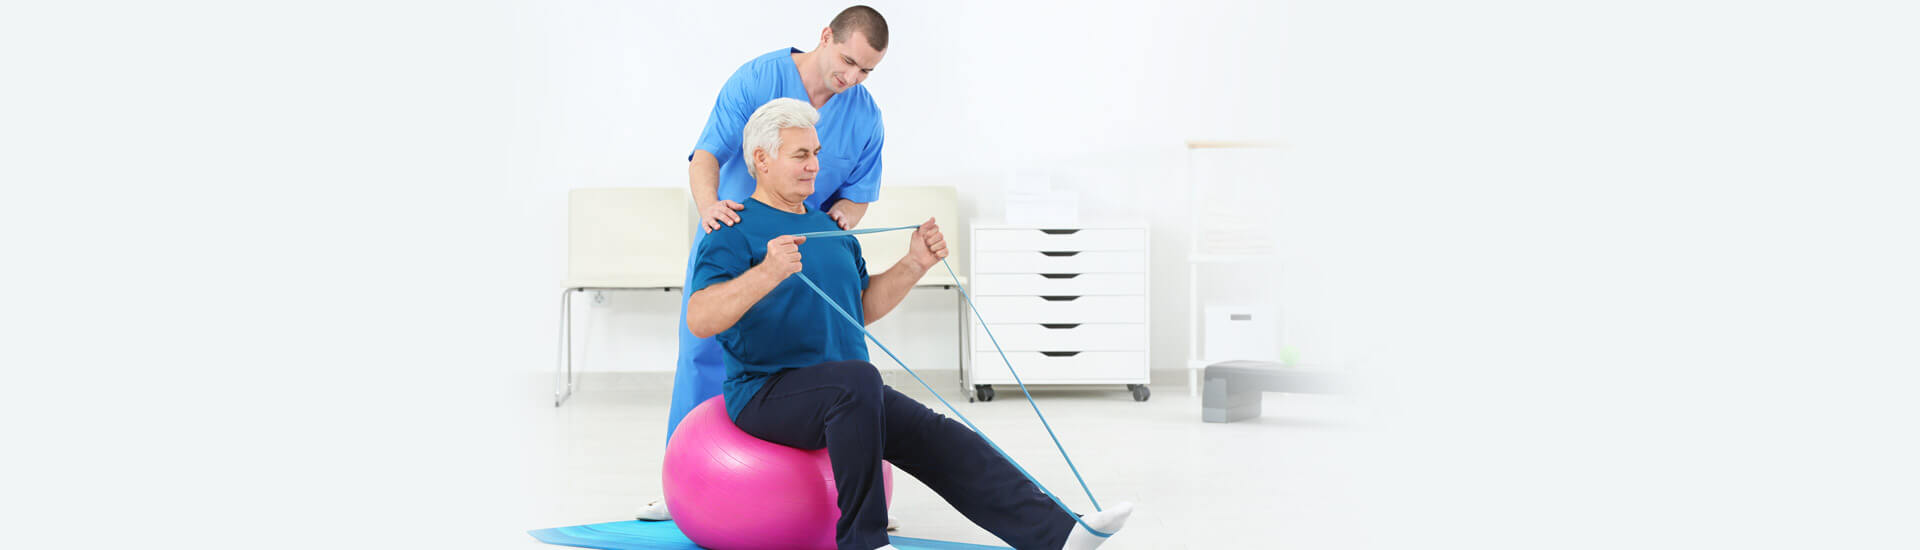 Injury Rehabilitation & Exercise Design